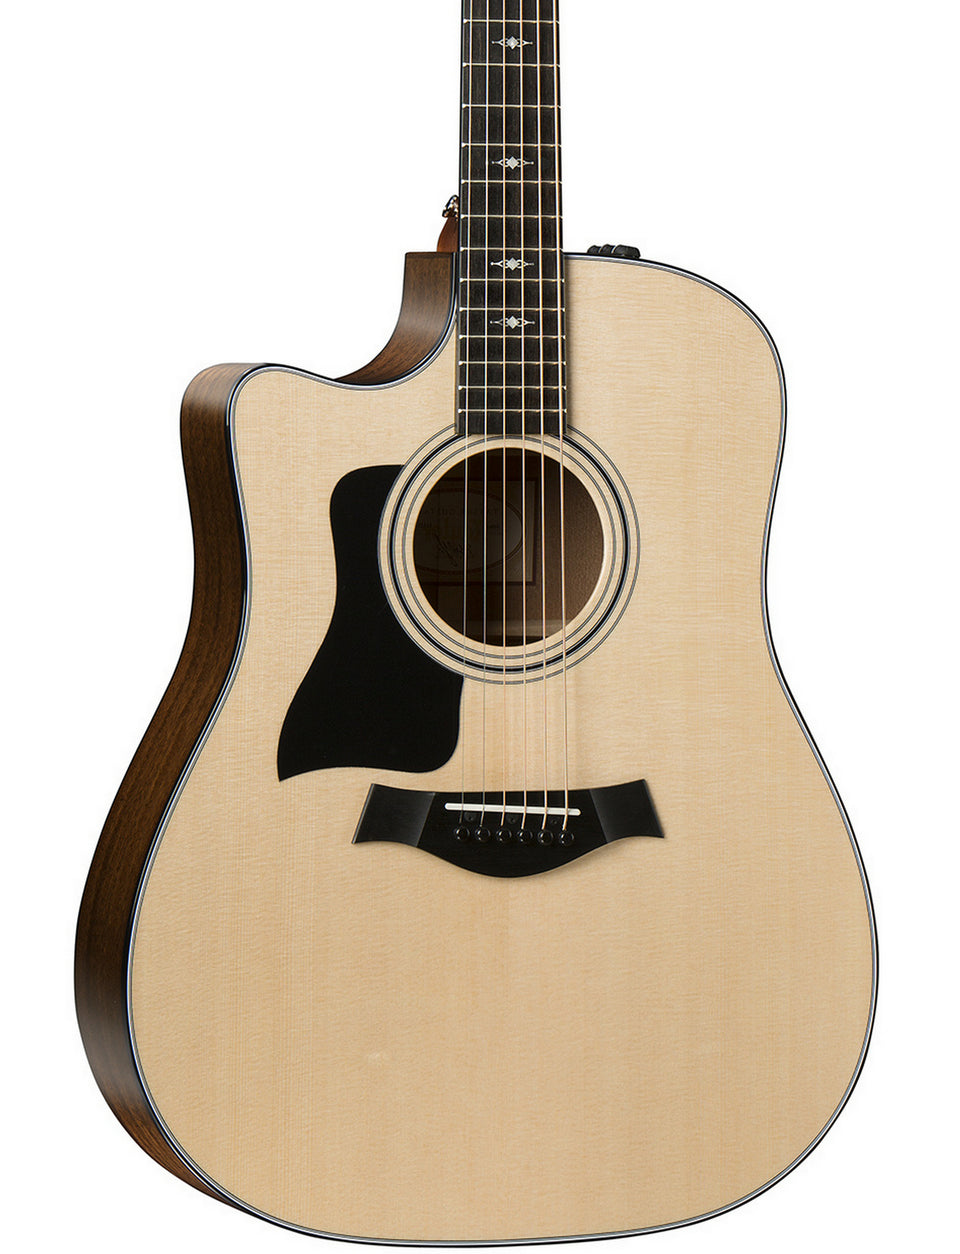 Taylor 310ce Left-Handed Dreadnought Acoustic Electric Guitar